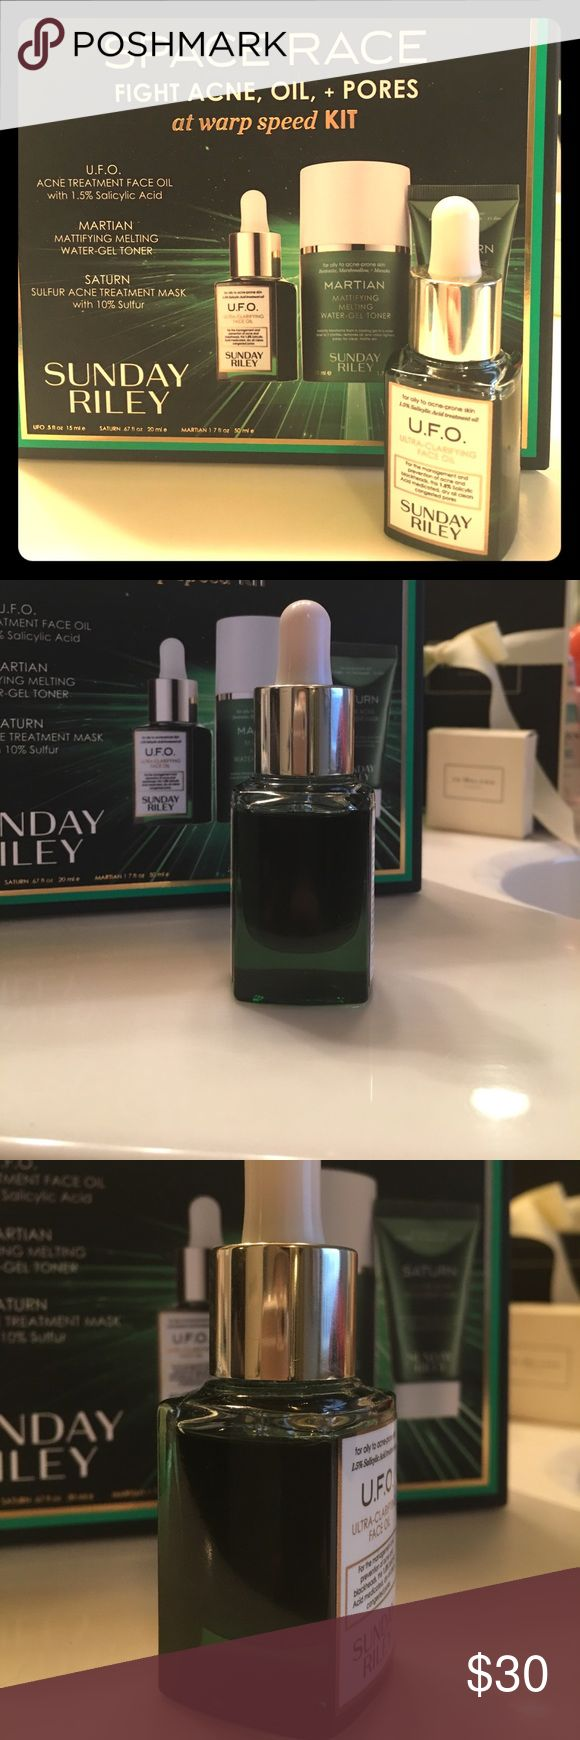 """Sunday Riley U.F.O. Ultra Clarifying Oil .5 fl oz """"With 1.5% salicylic acid, this fast acting, quick-drying, medicated oil clears acne and blackhead-causing buildup and debris from congested pores for smoother, blemish-free skin"""".... Hardly used (see photos)... Purchased less than a month ago. Sunday Riley Other"""